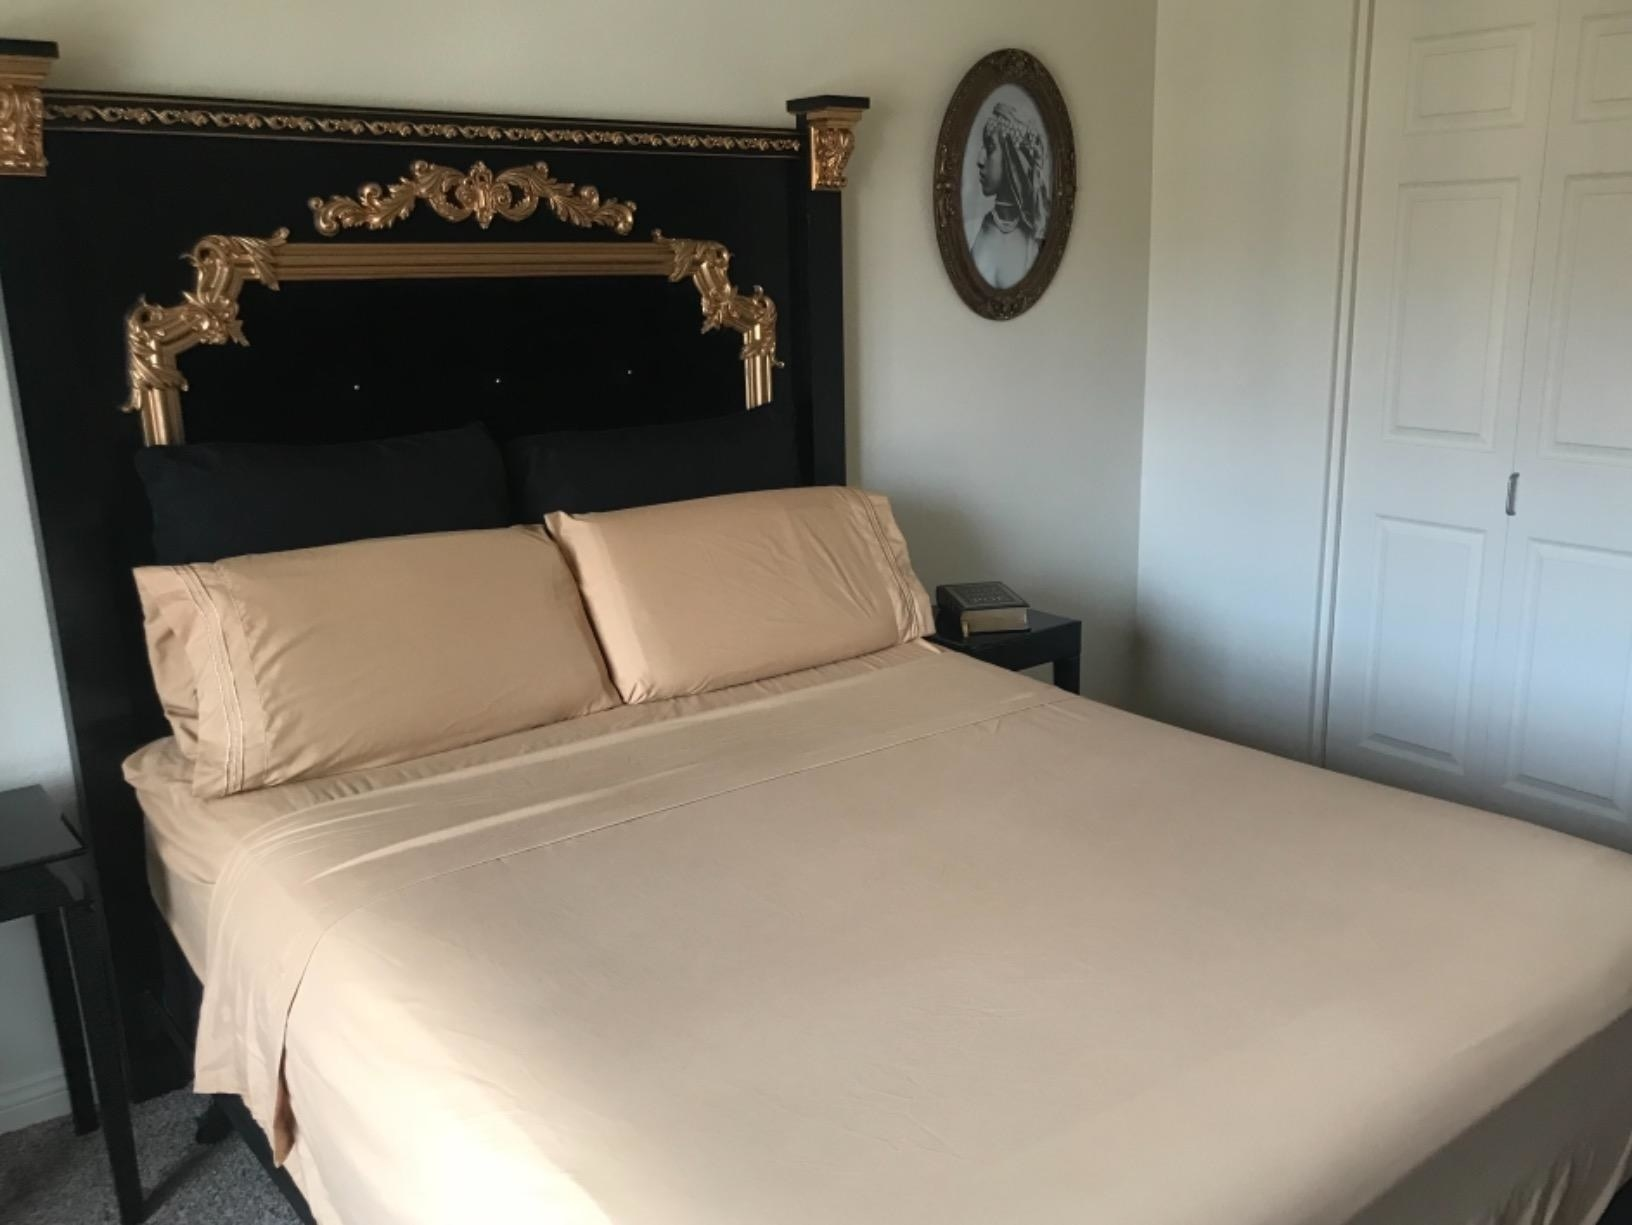 A reviewer showing dark beige-colored sheets neatly fitted across their bed